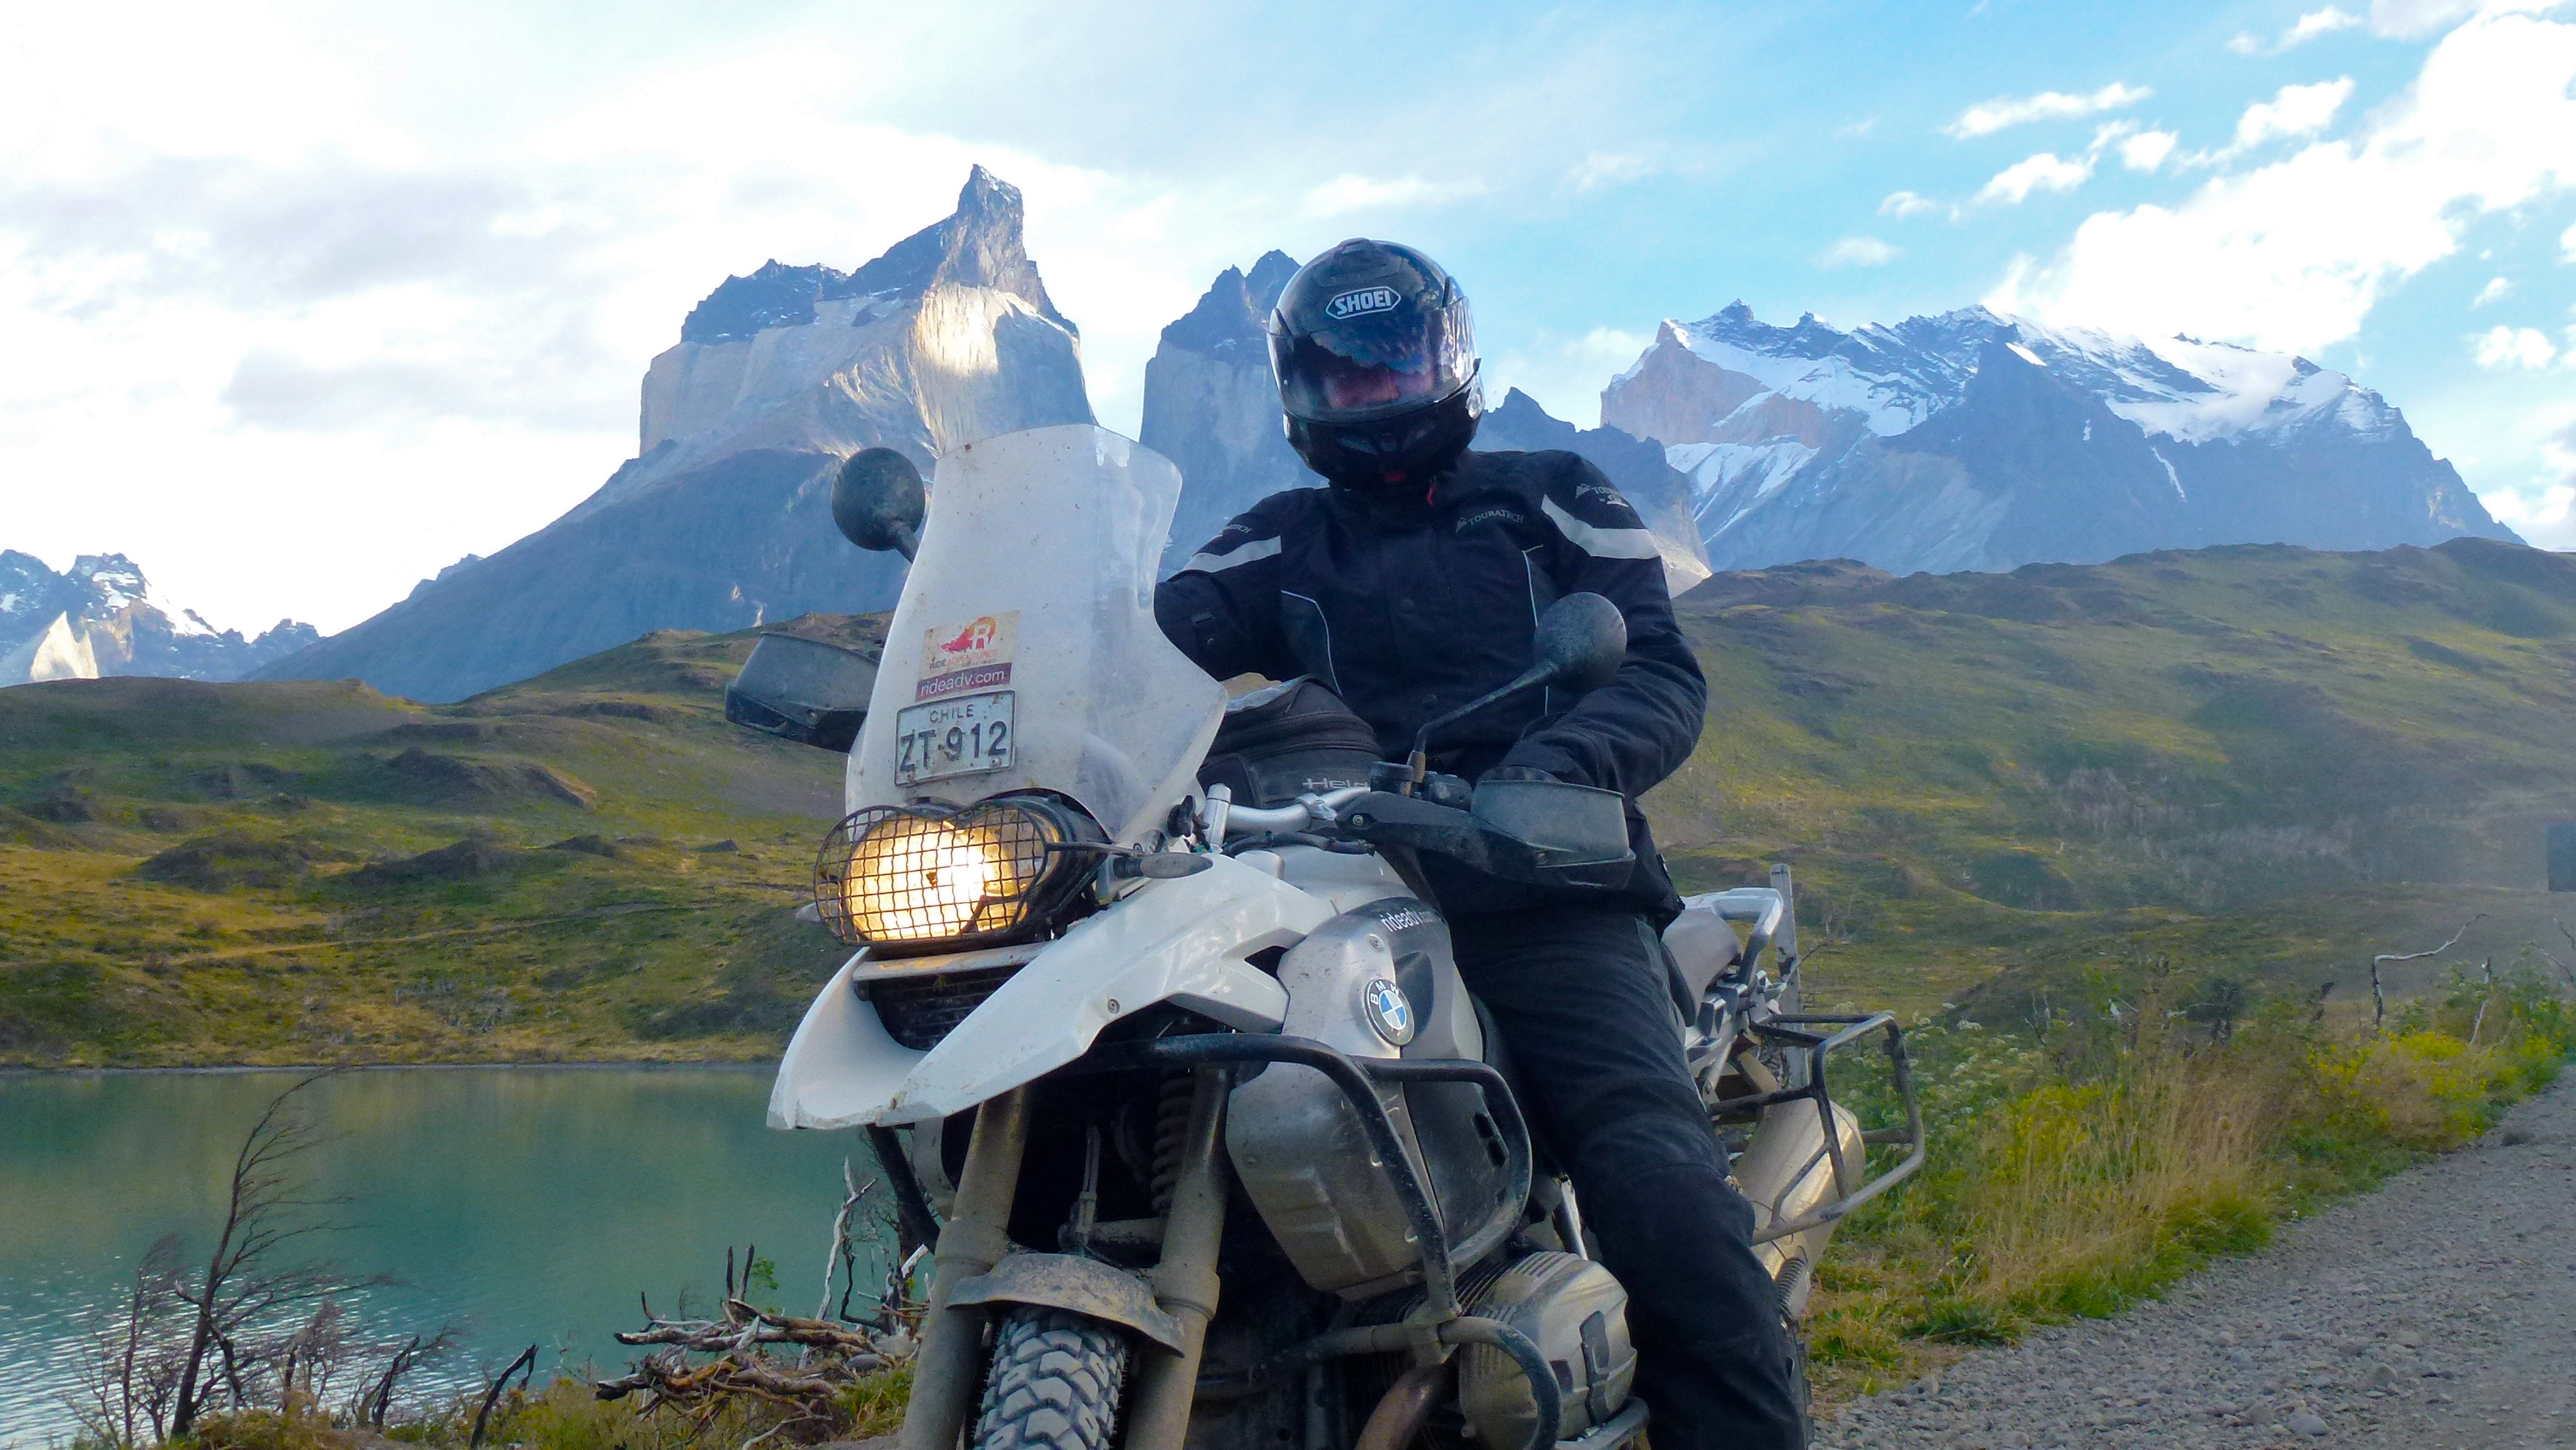 Motorcycle Rider in Torres del Paine National Park